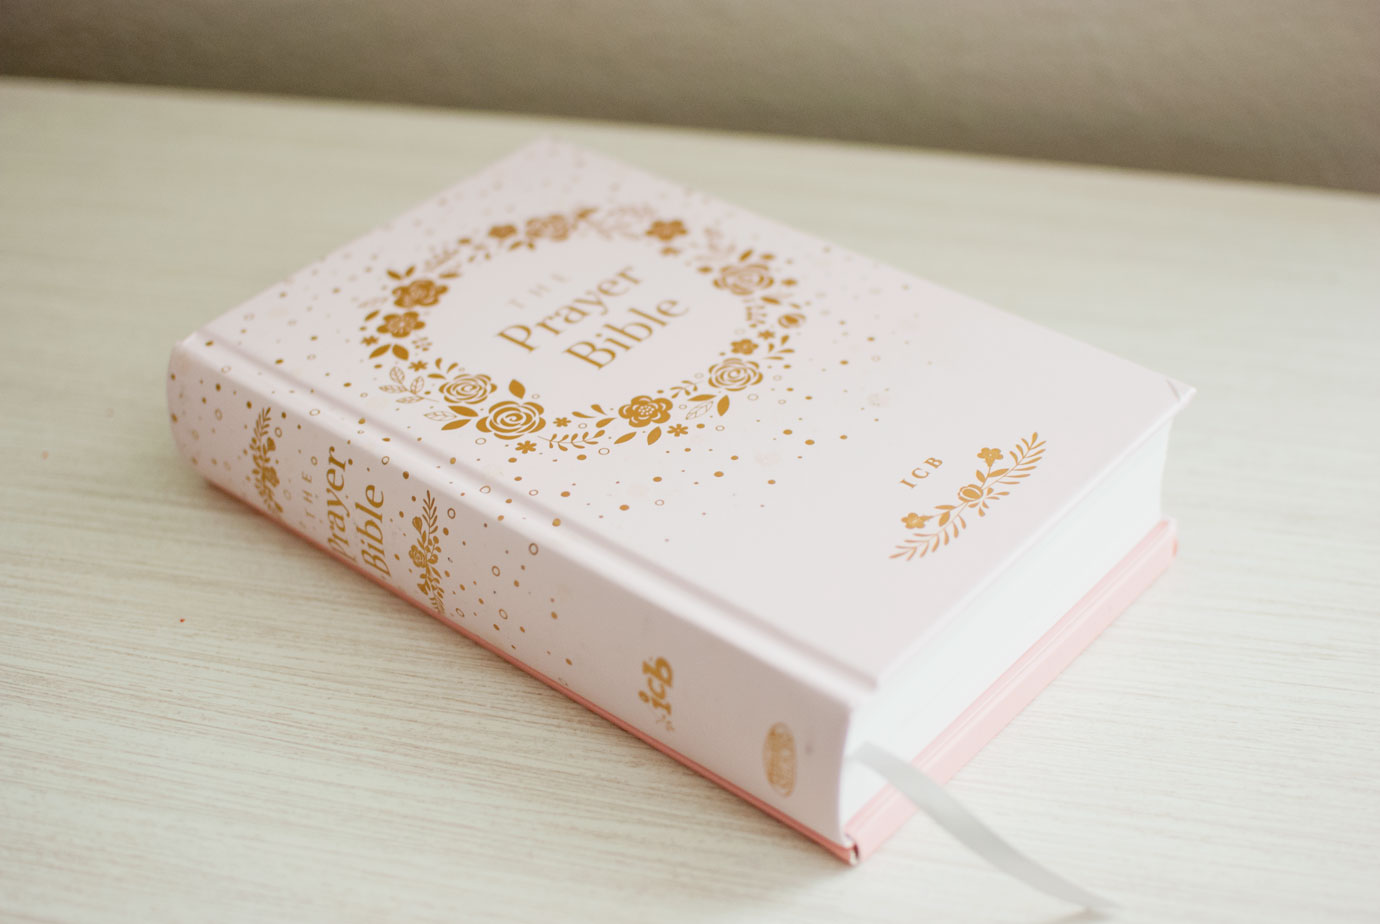 ICB Prayer Bible For Children | Review and Giveaway - The Dotted Nest